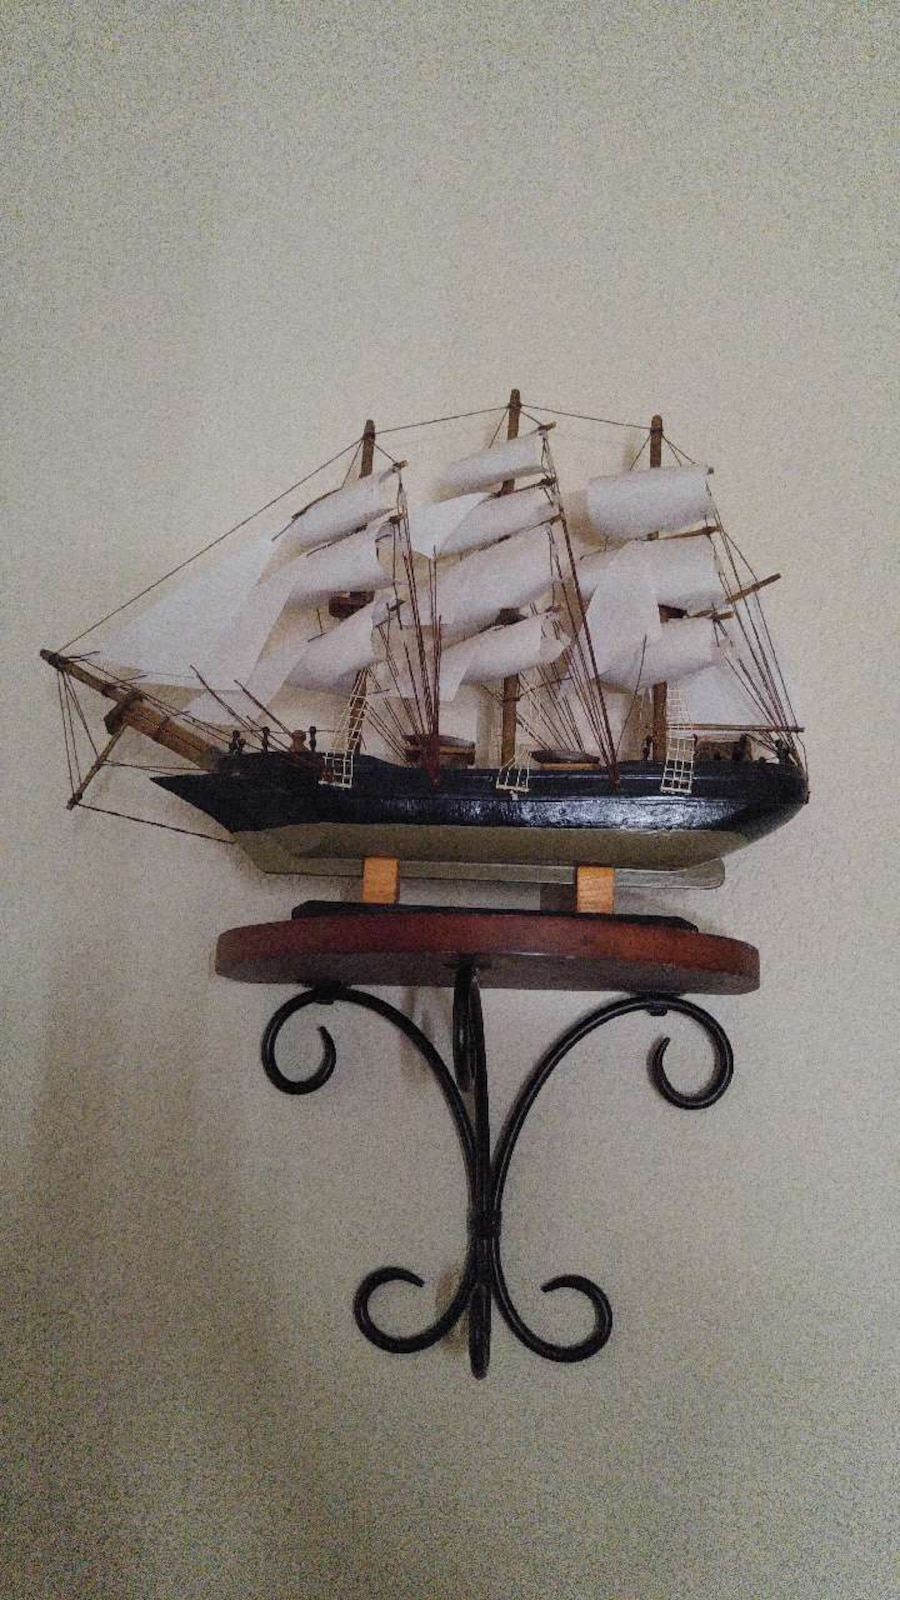 Wooden ships with shelves - AZ